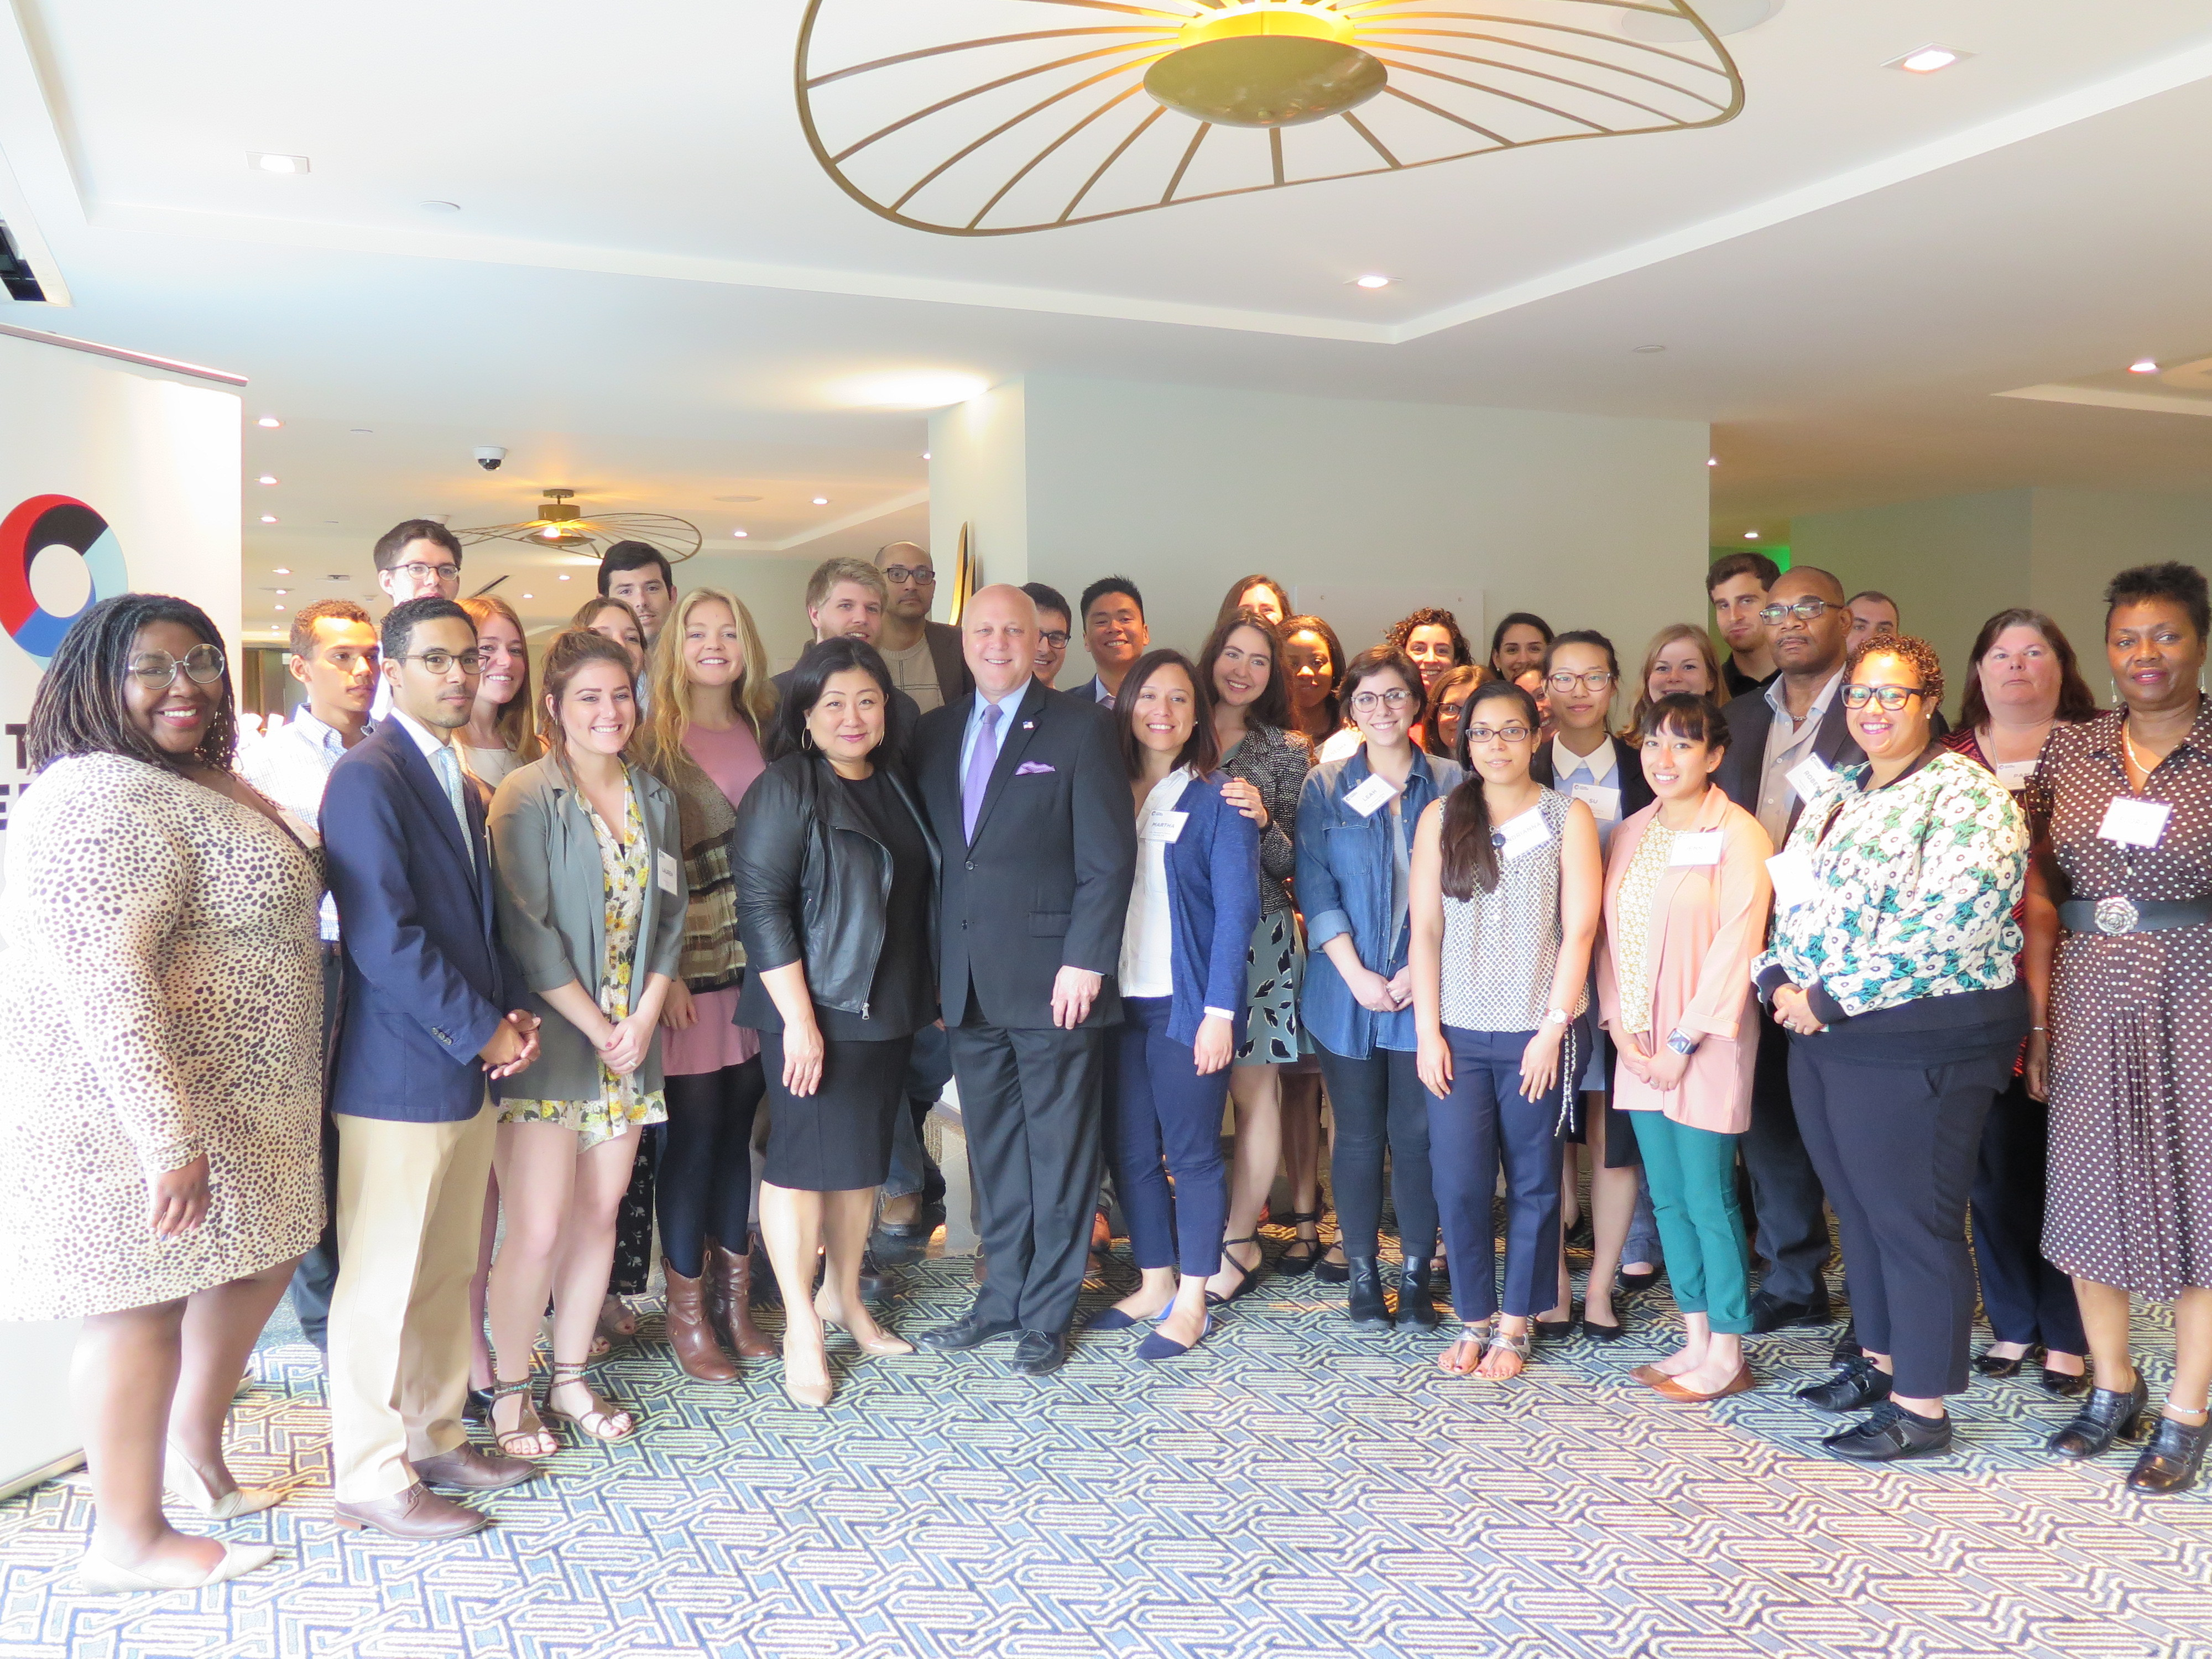 City of New Orleans Mayor Mitch Landrieu, Cities of Service Executive Director Myung J. Lee, and the Cities of Service AmeriCorps cohort of 2017.